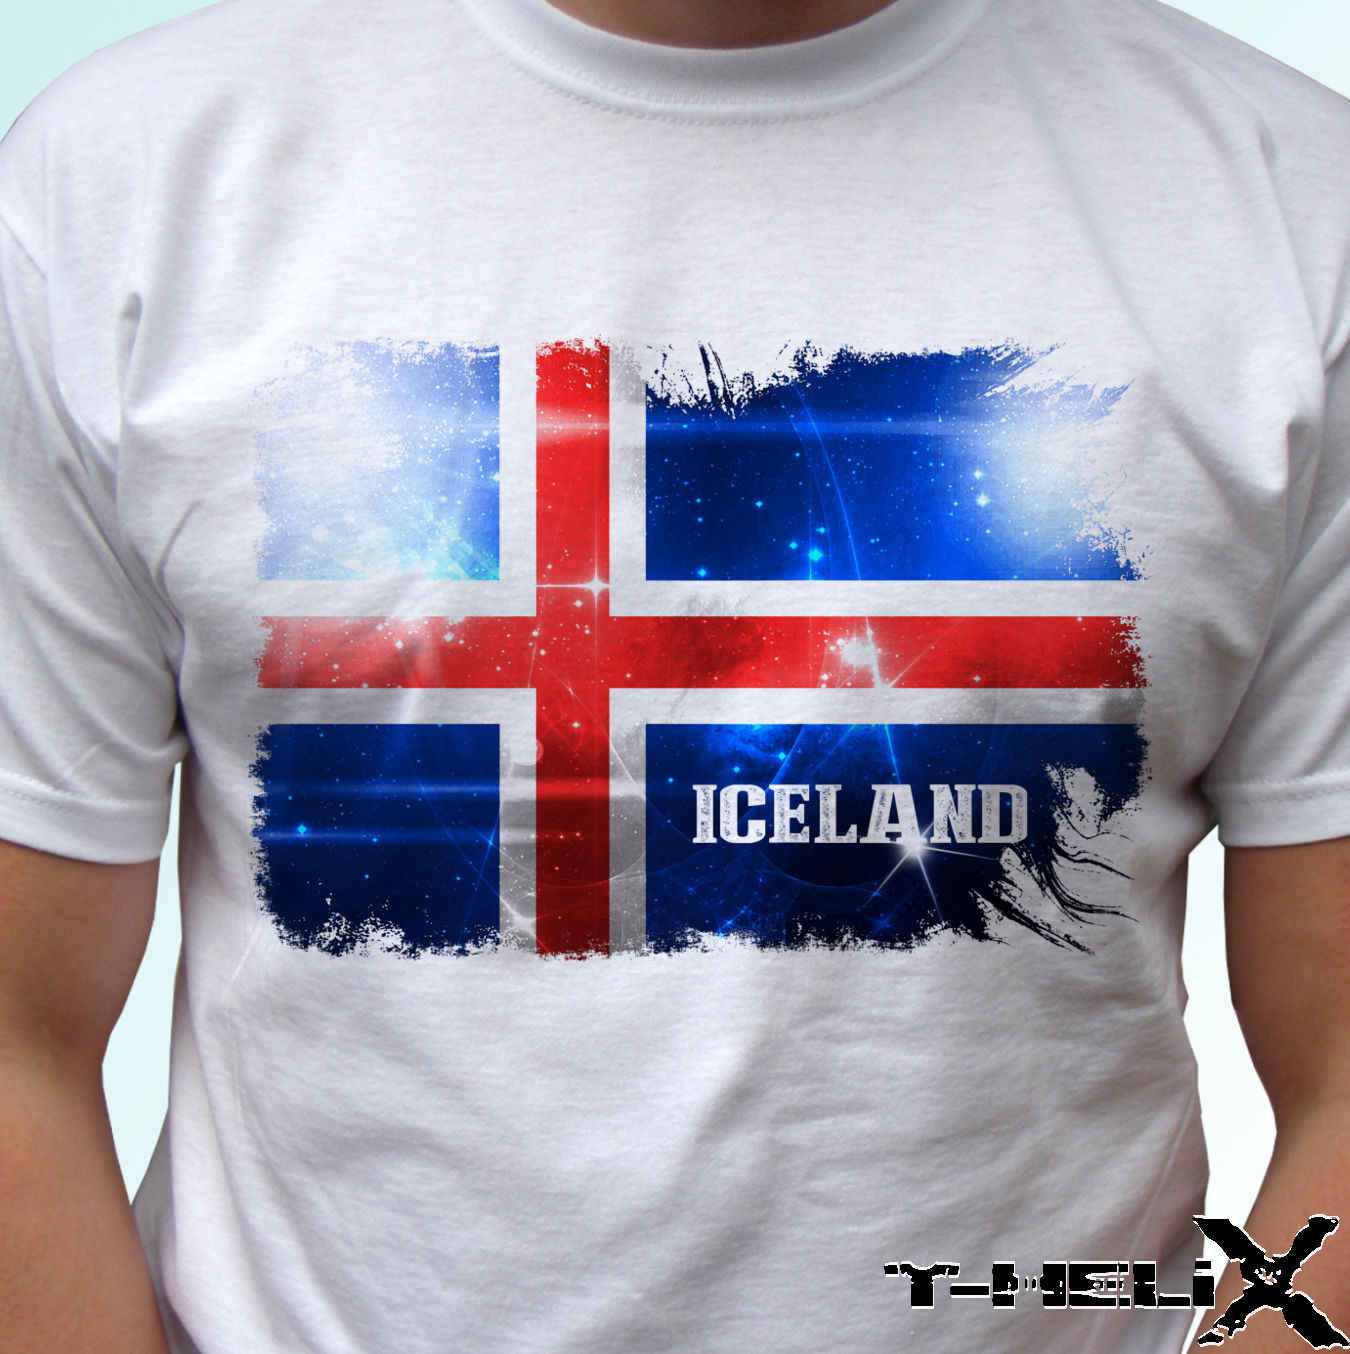 Iceland flag - white t shirt top country design - mens womens kids baby sizes custom printed tshirt,hip hop funny tee